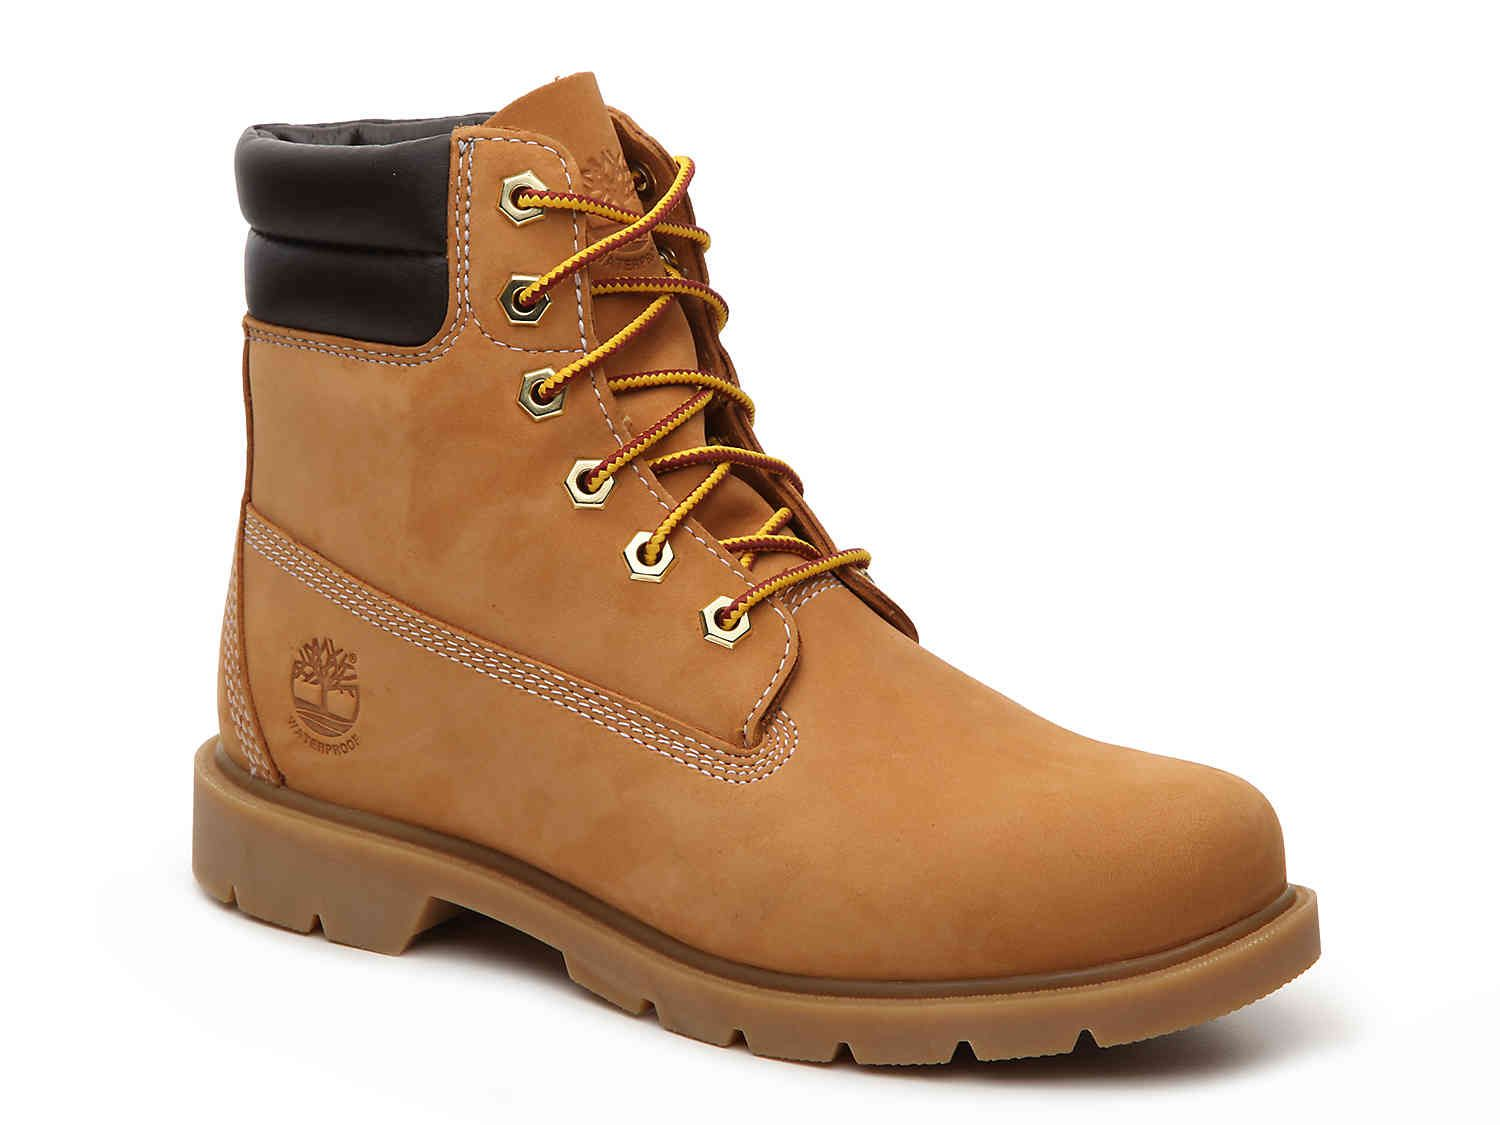 Linden Woods Bootie   Boots, Shoes boots timberland